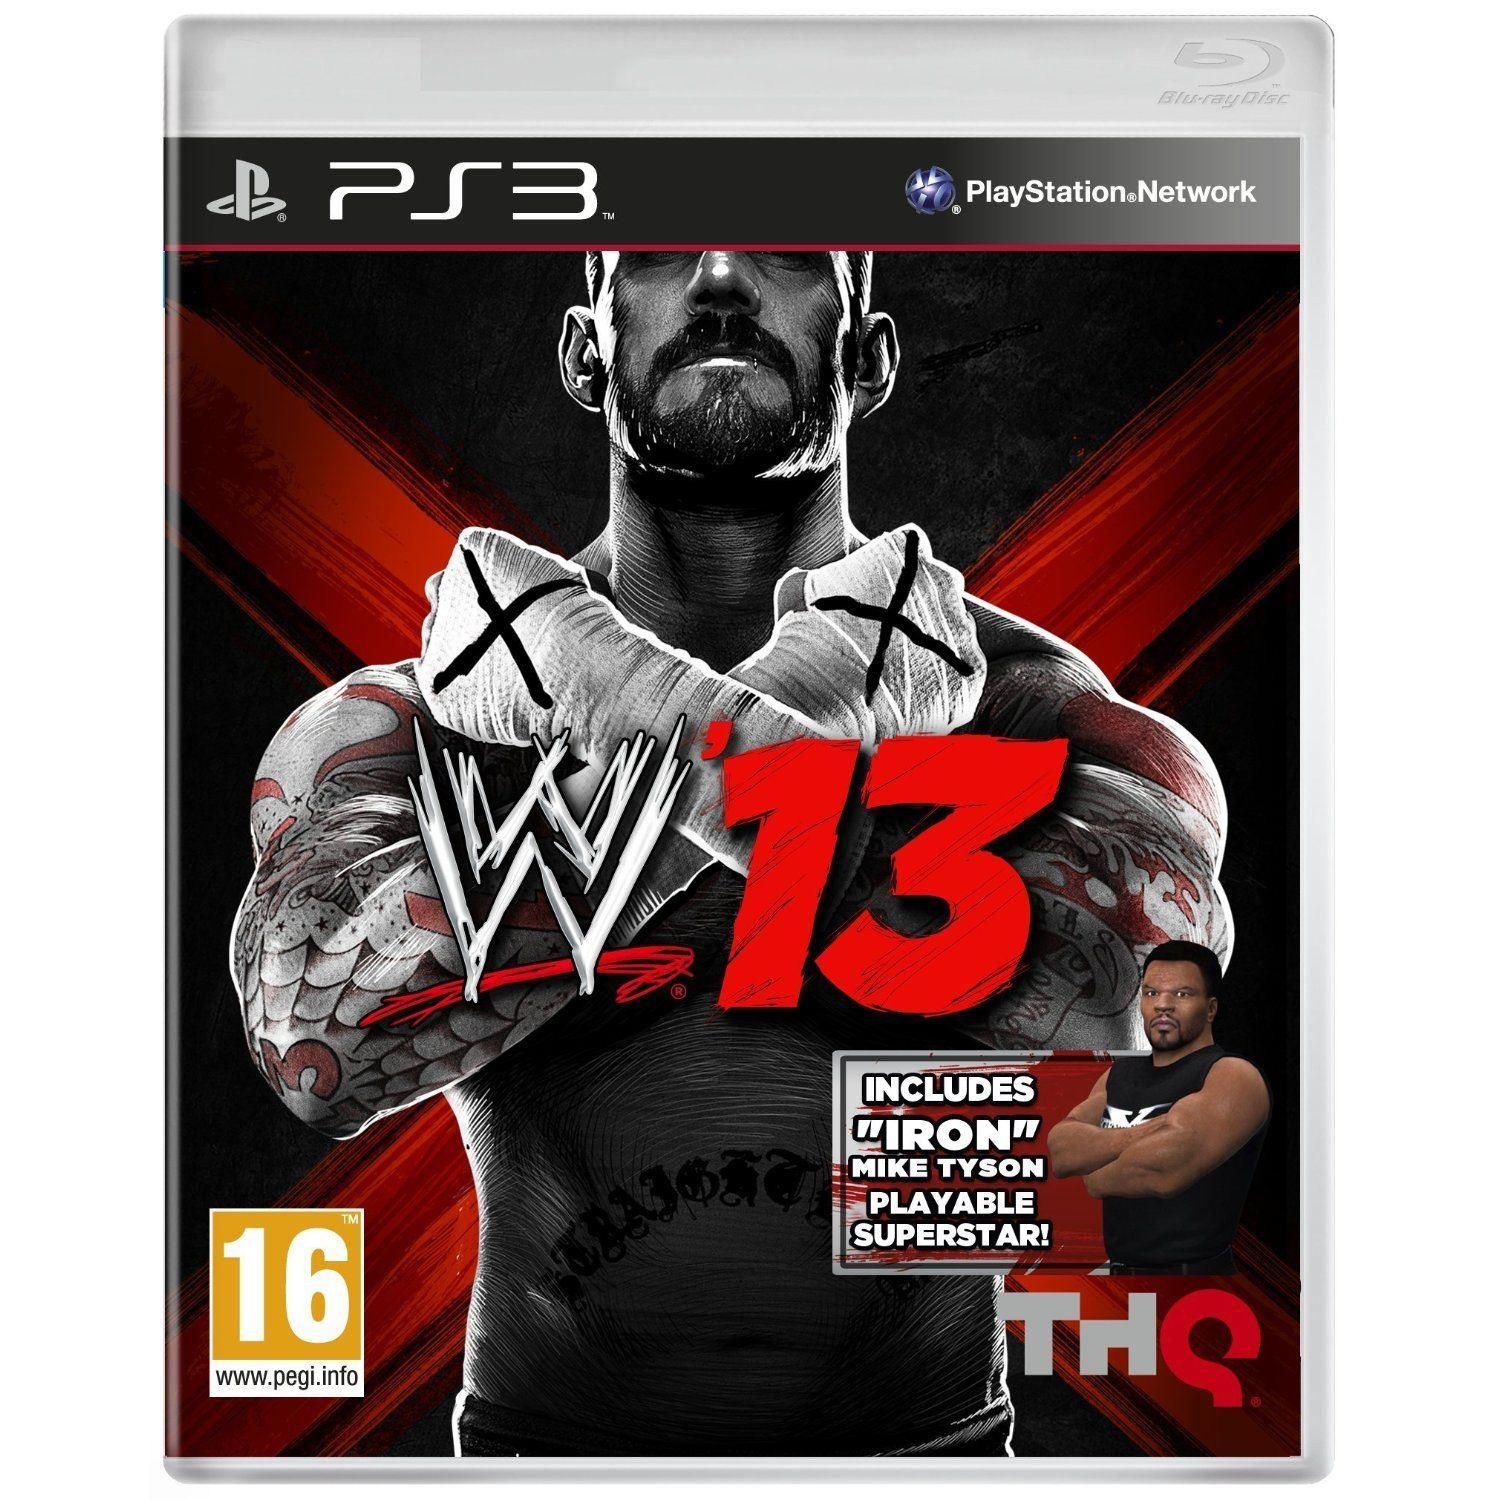 WWE 13 Mike Tyson PS3 Game